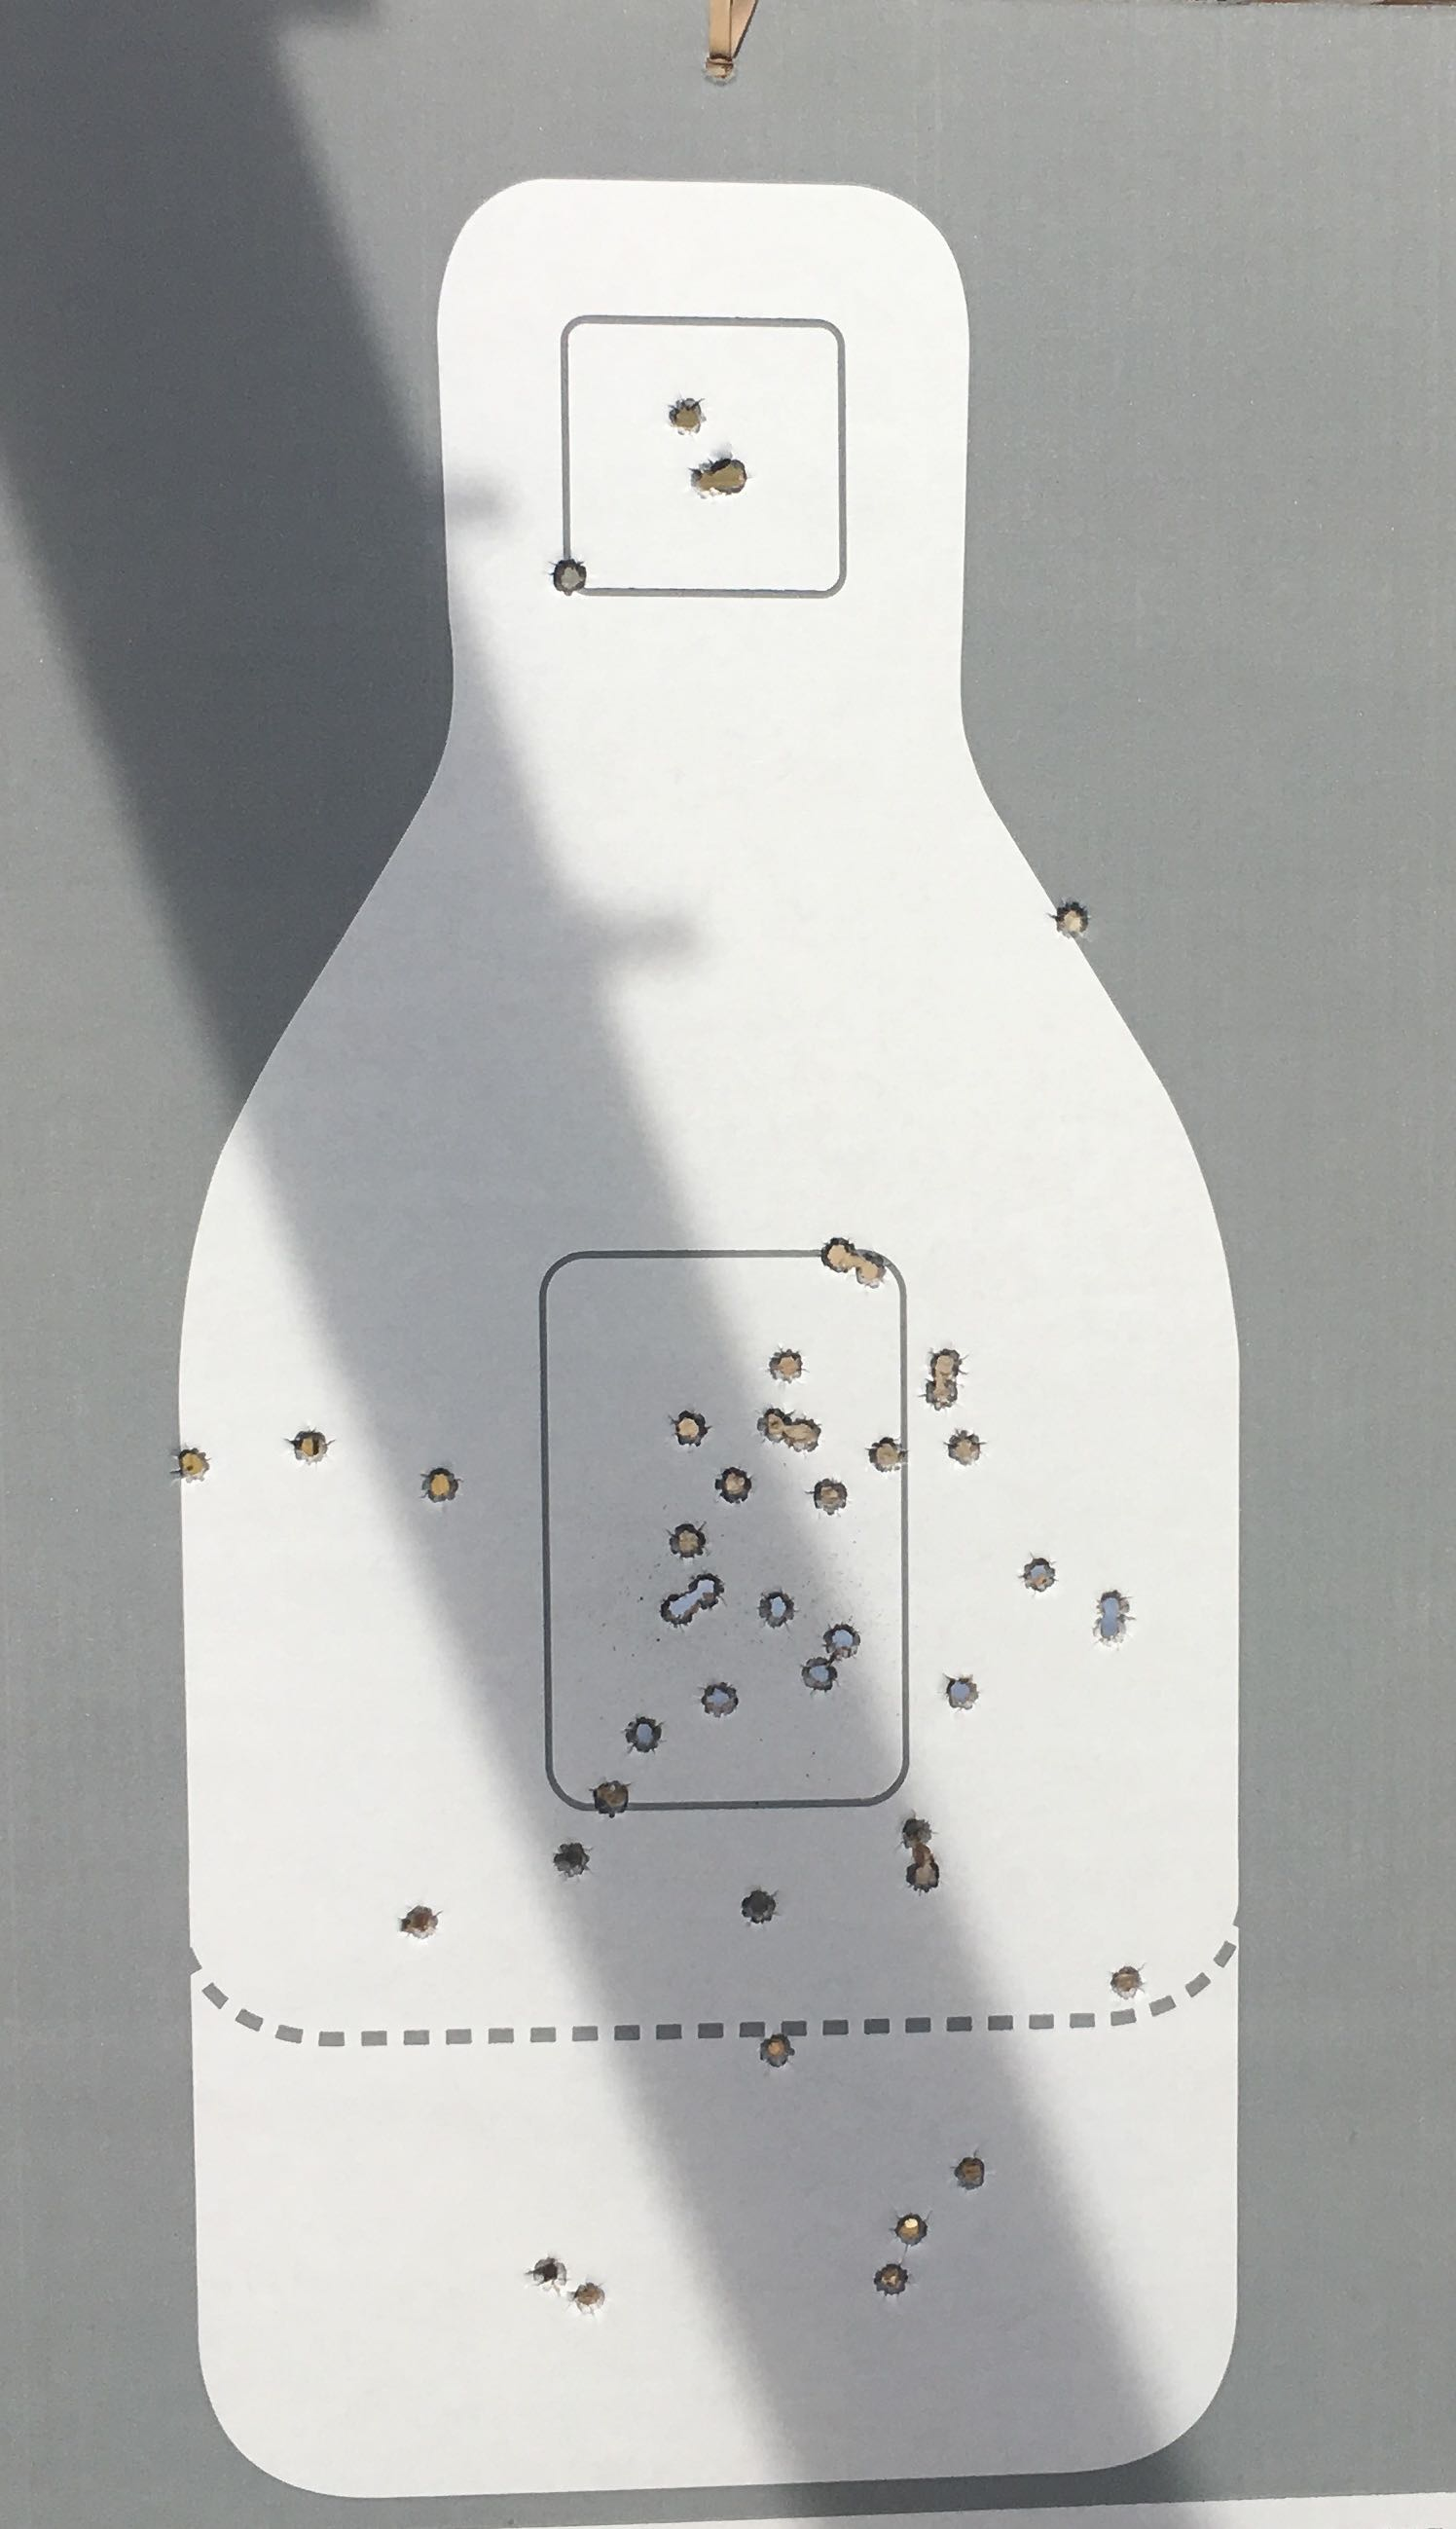 c60aae58bf28 Above is my 7-yard five circle drill target. All things considered (small  sights